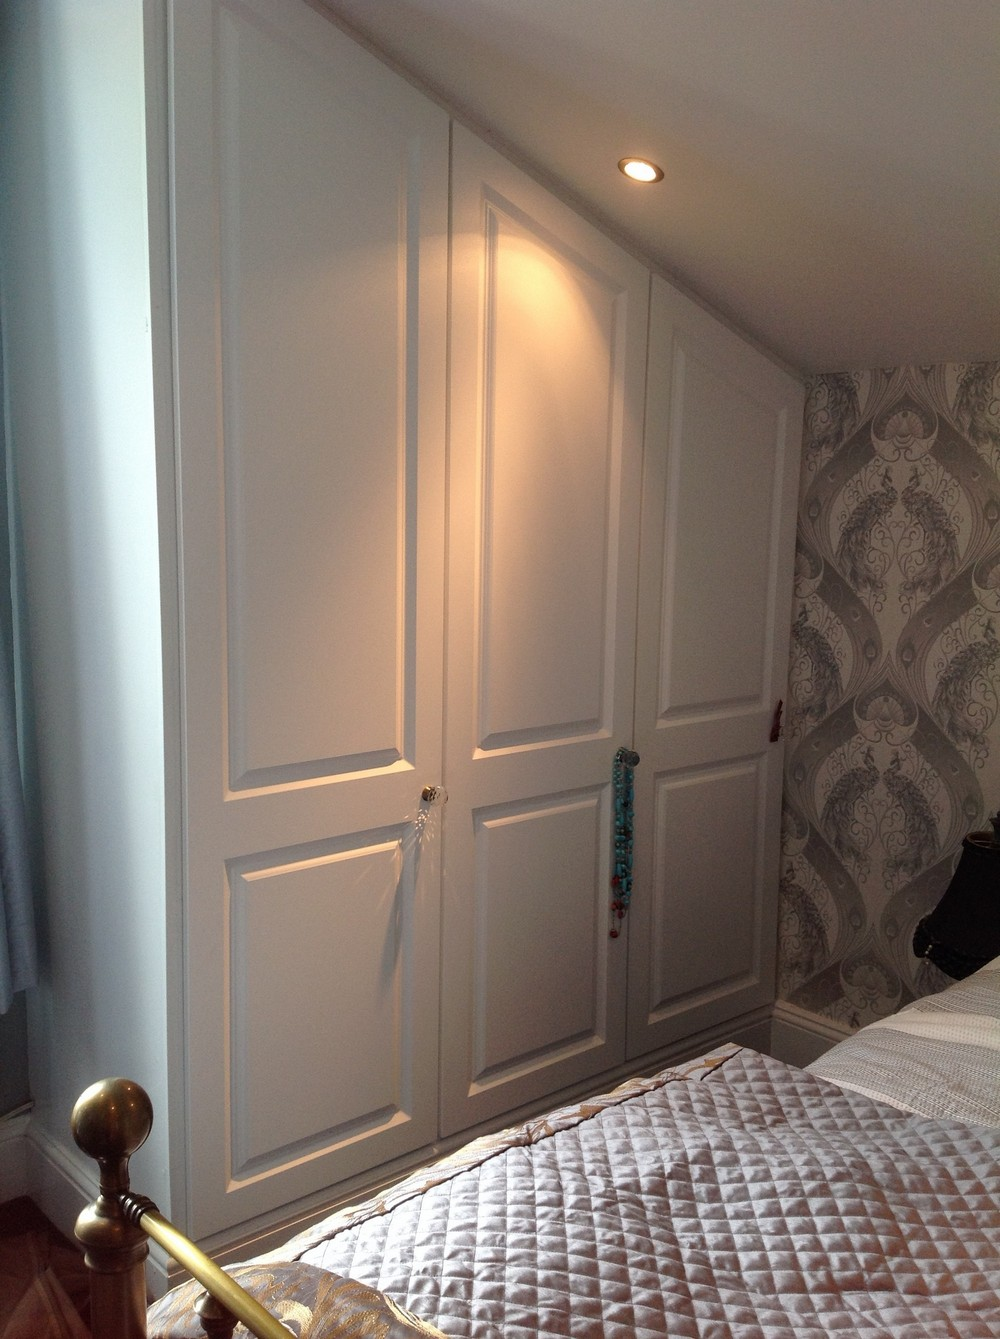 Customer images of Wardrobe Doors. Custom ... & Wardrobe Doors Replacement Wardrobe Doors Fitted